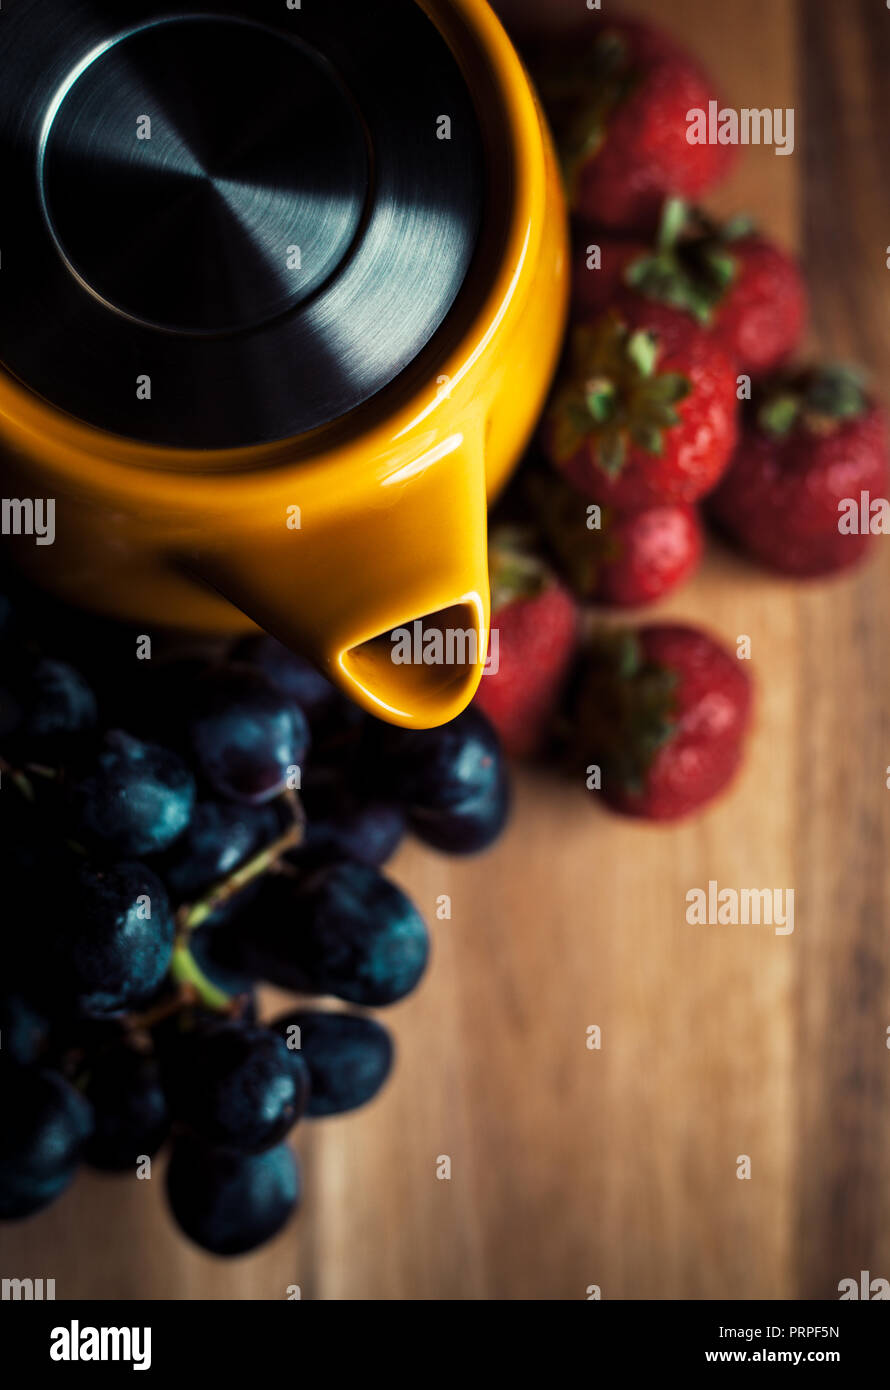 photo of a bright yellow teapot on a wooden table Stock Photo